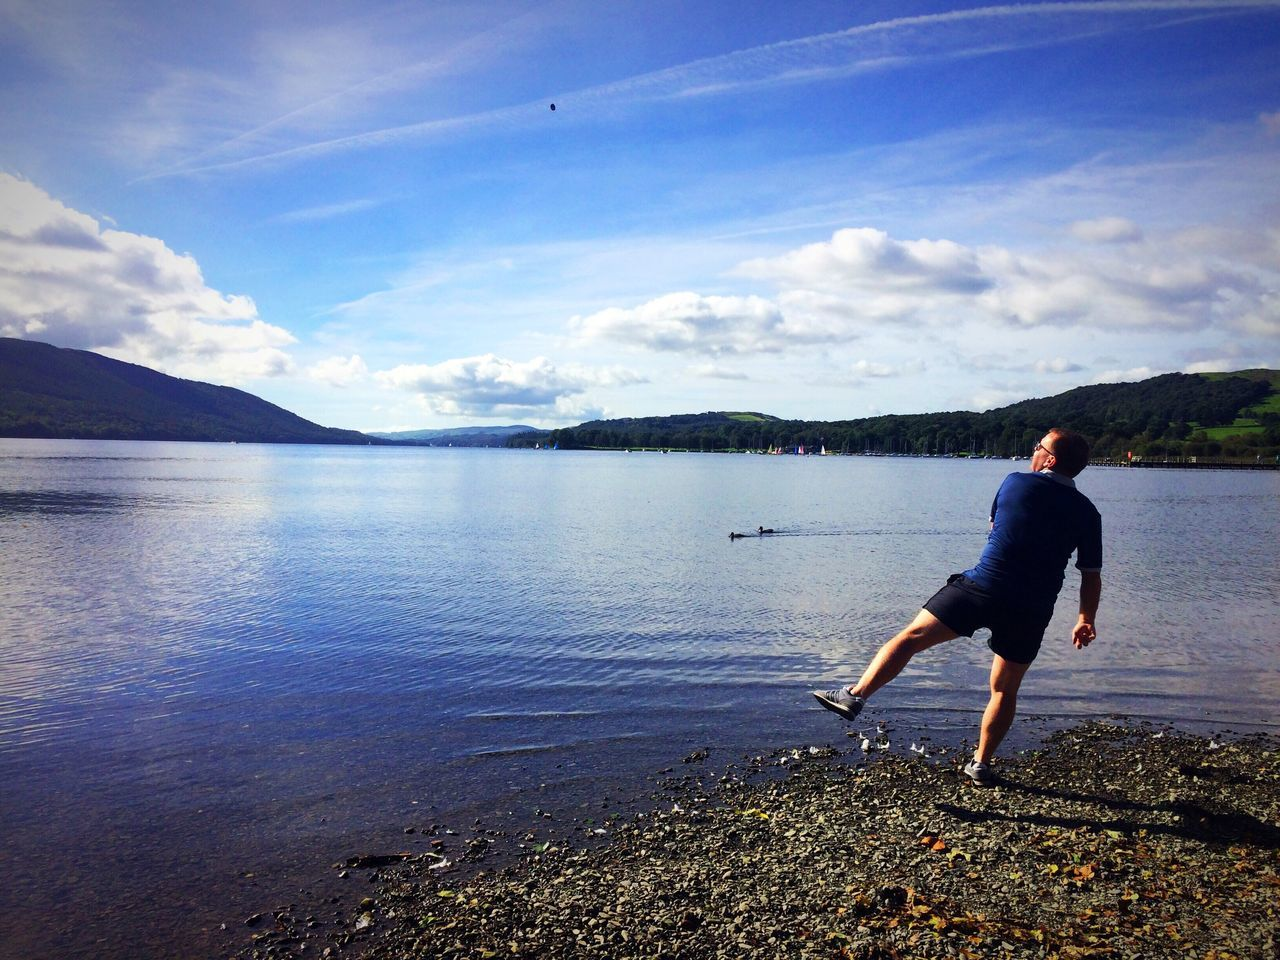 Coniston Water Coniston Waters Lake District Reflection Water Reflections Cloud - Sky Man Throwing Stones In The Water Throwing Stones Water Coniston Beautiful Beauty In Nature